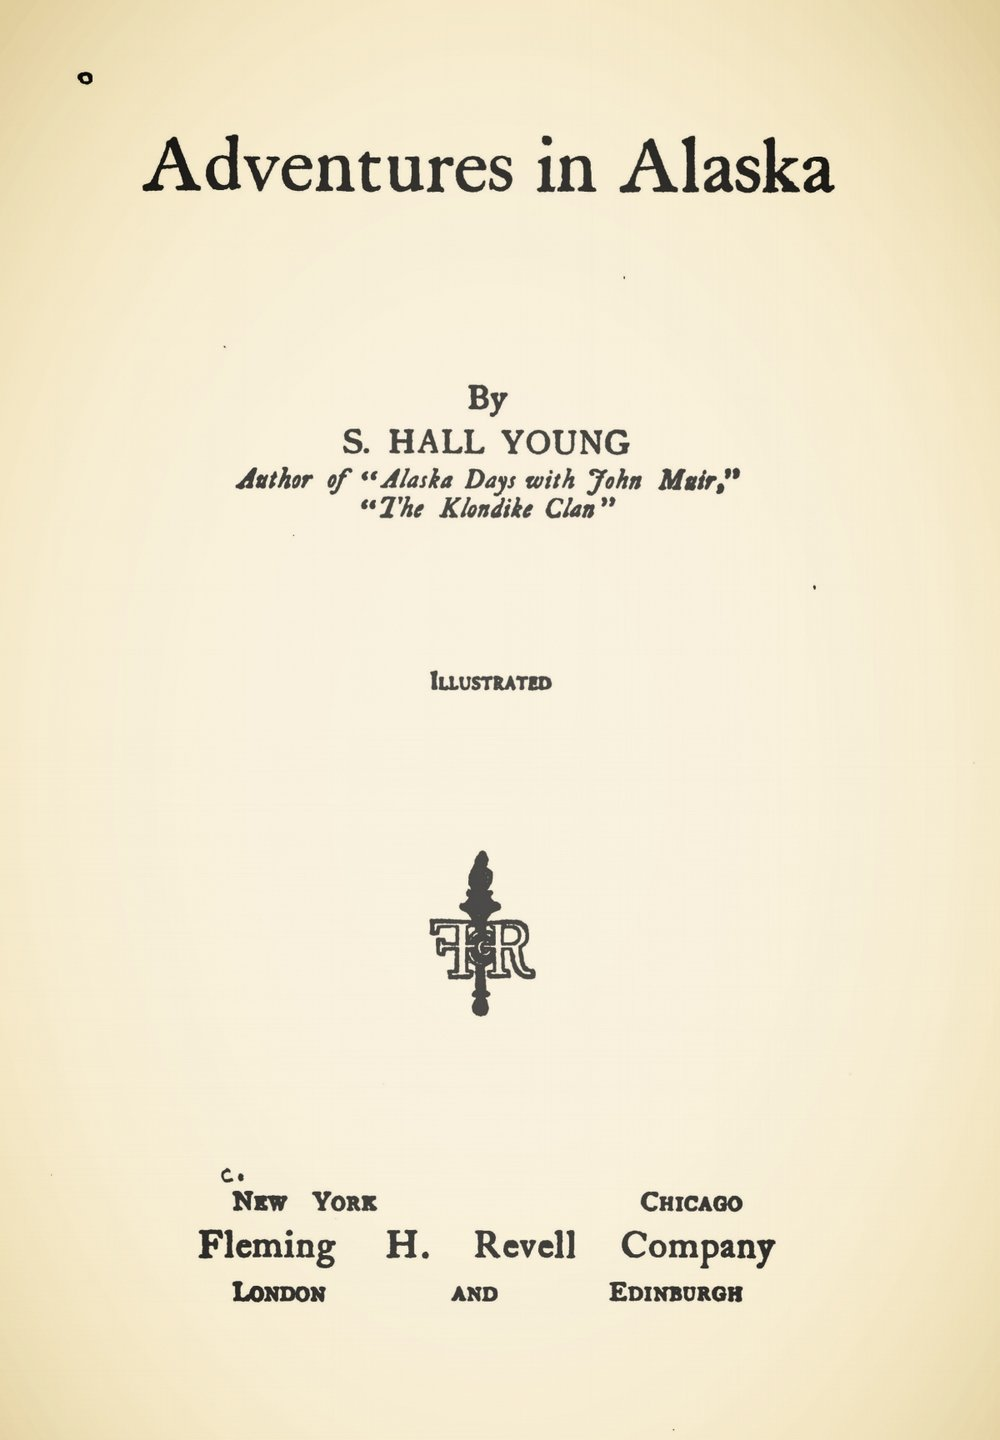 Young, Samuel Hall, Adventures in Alaska Title Page.jpg